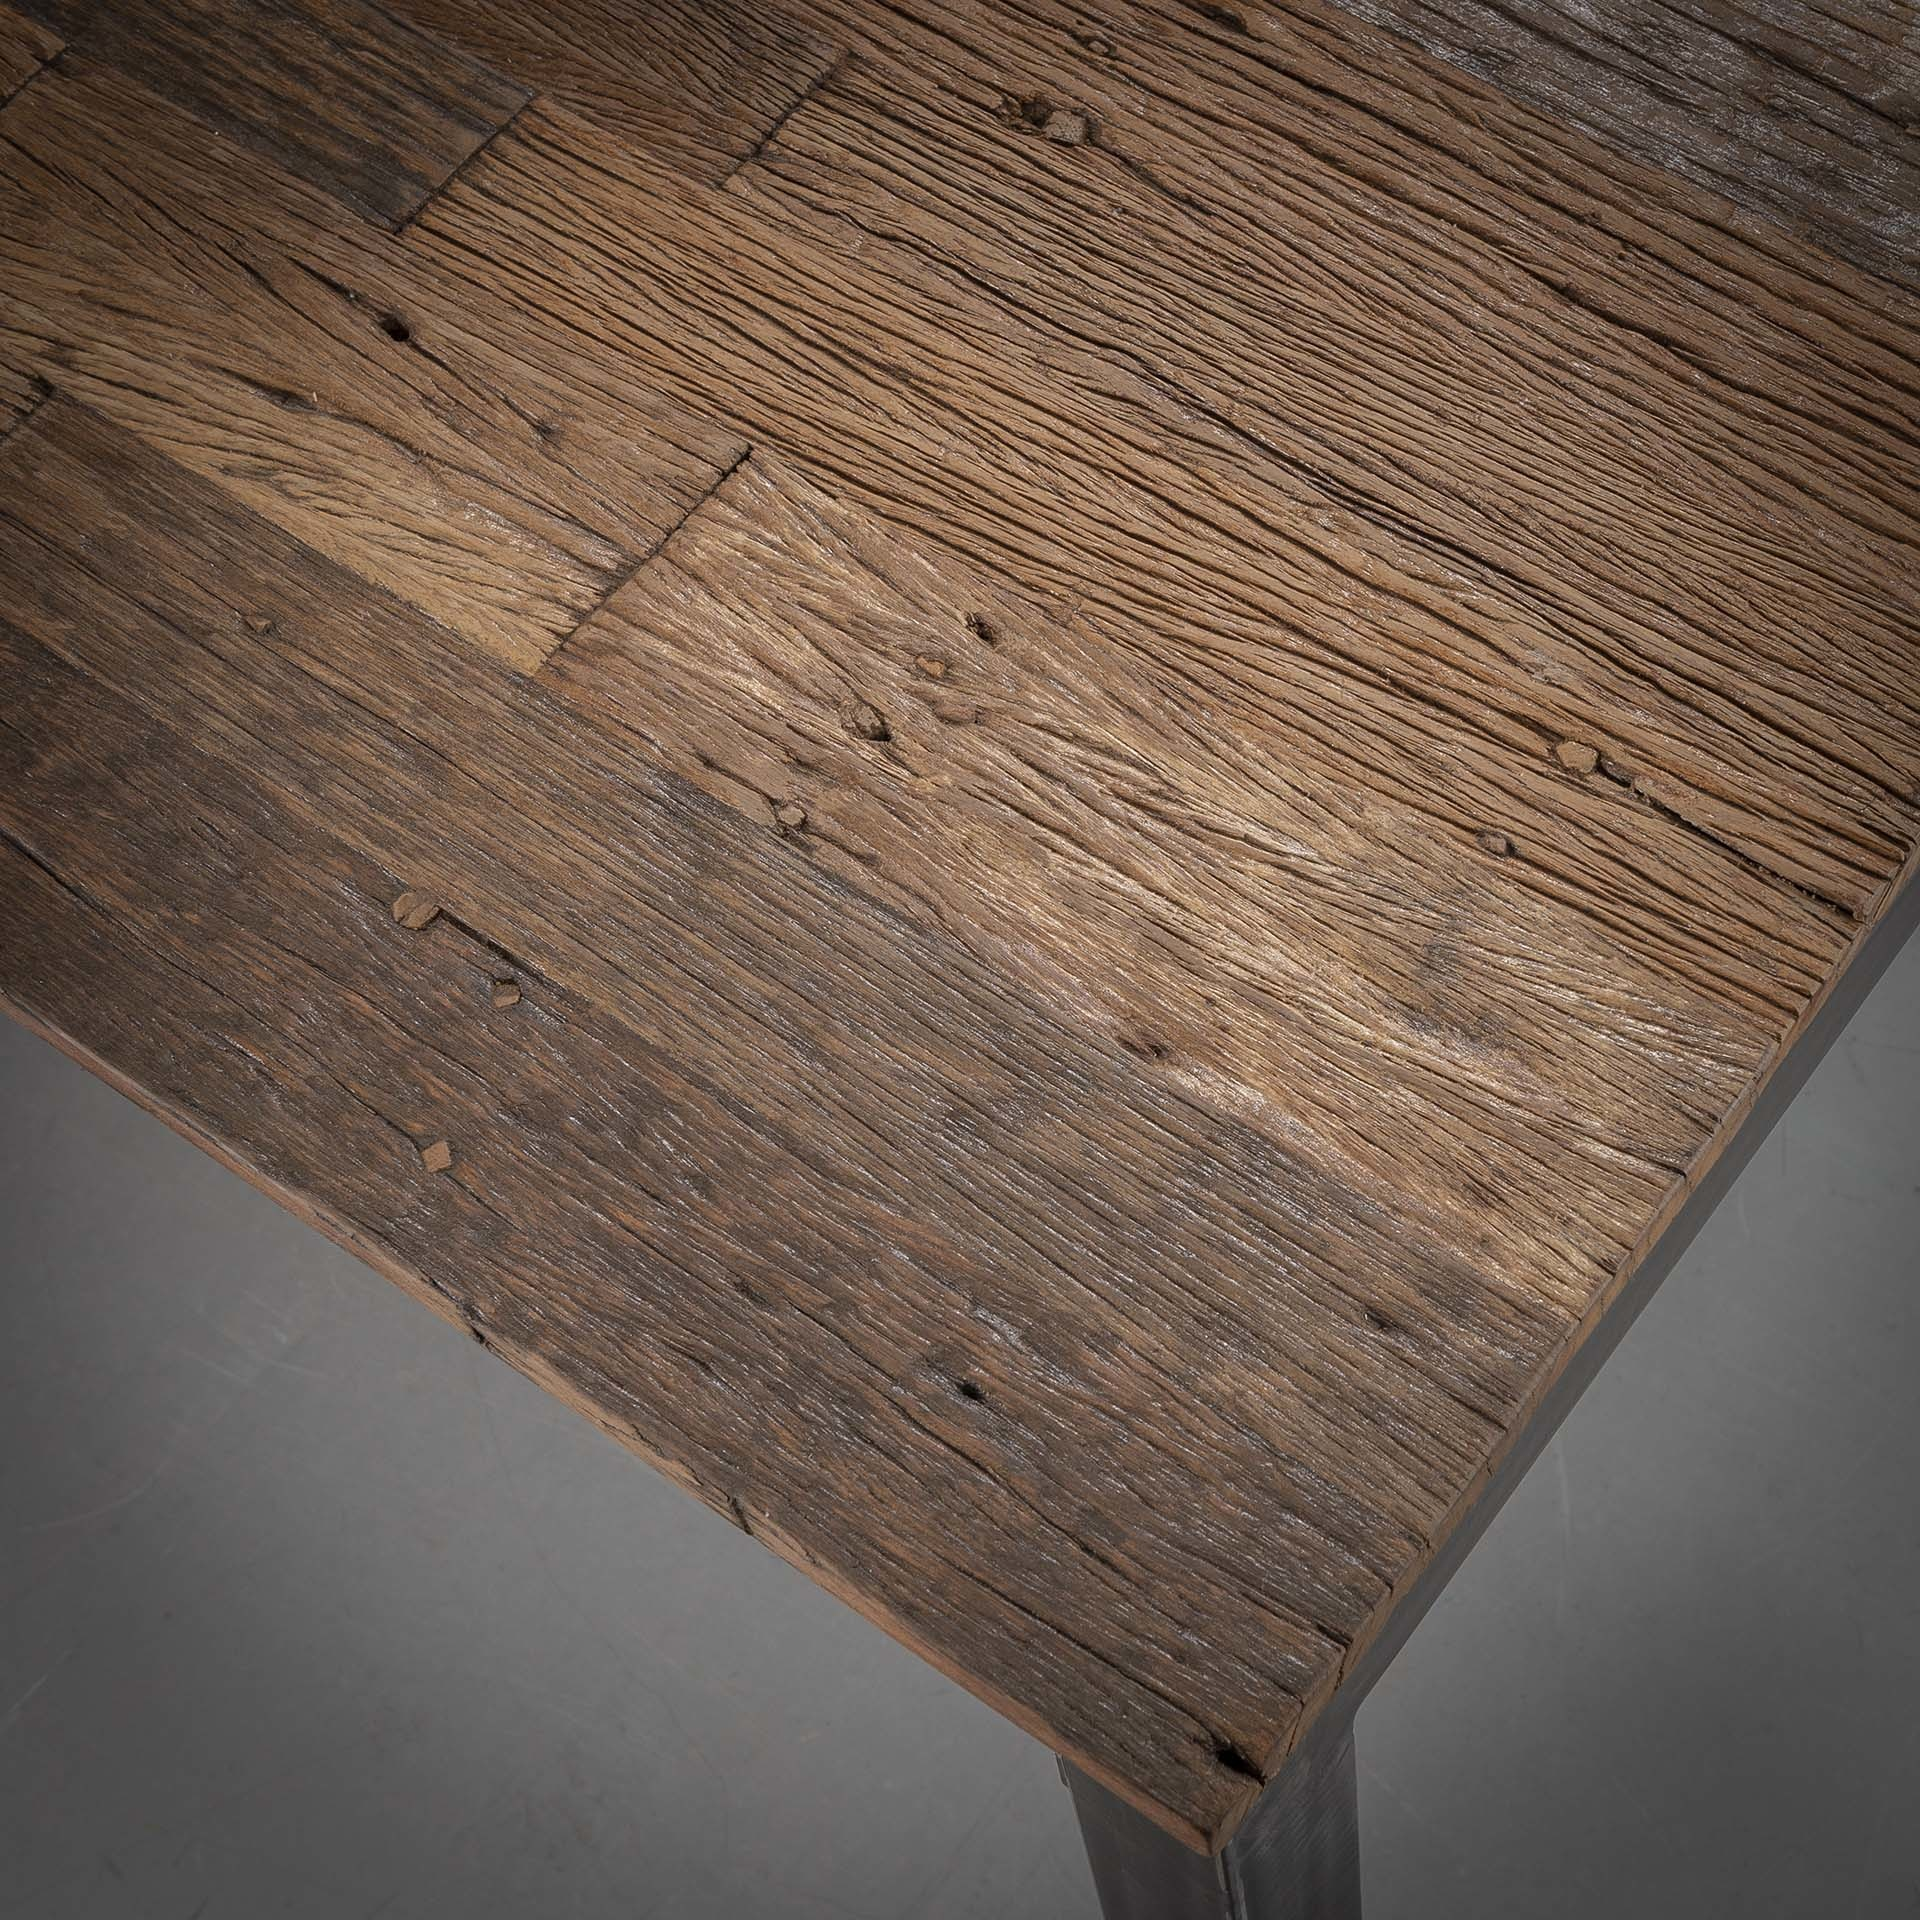 Duverger Recycled - Eettafel - grained - robuust hardhout - 210x90cm